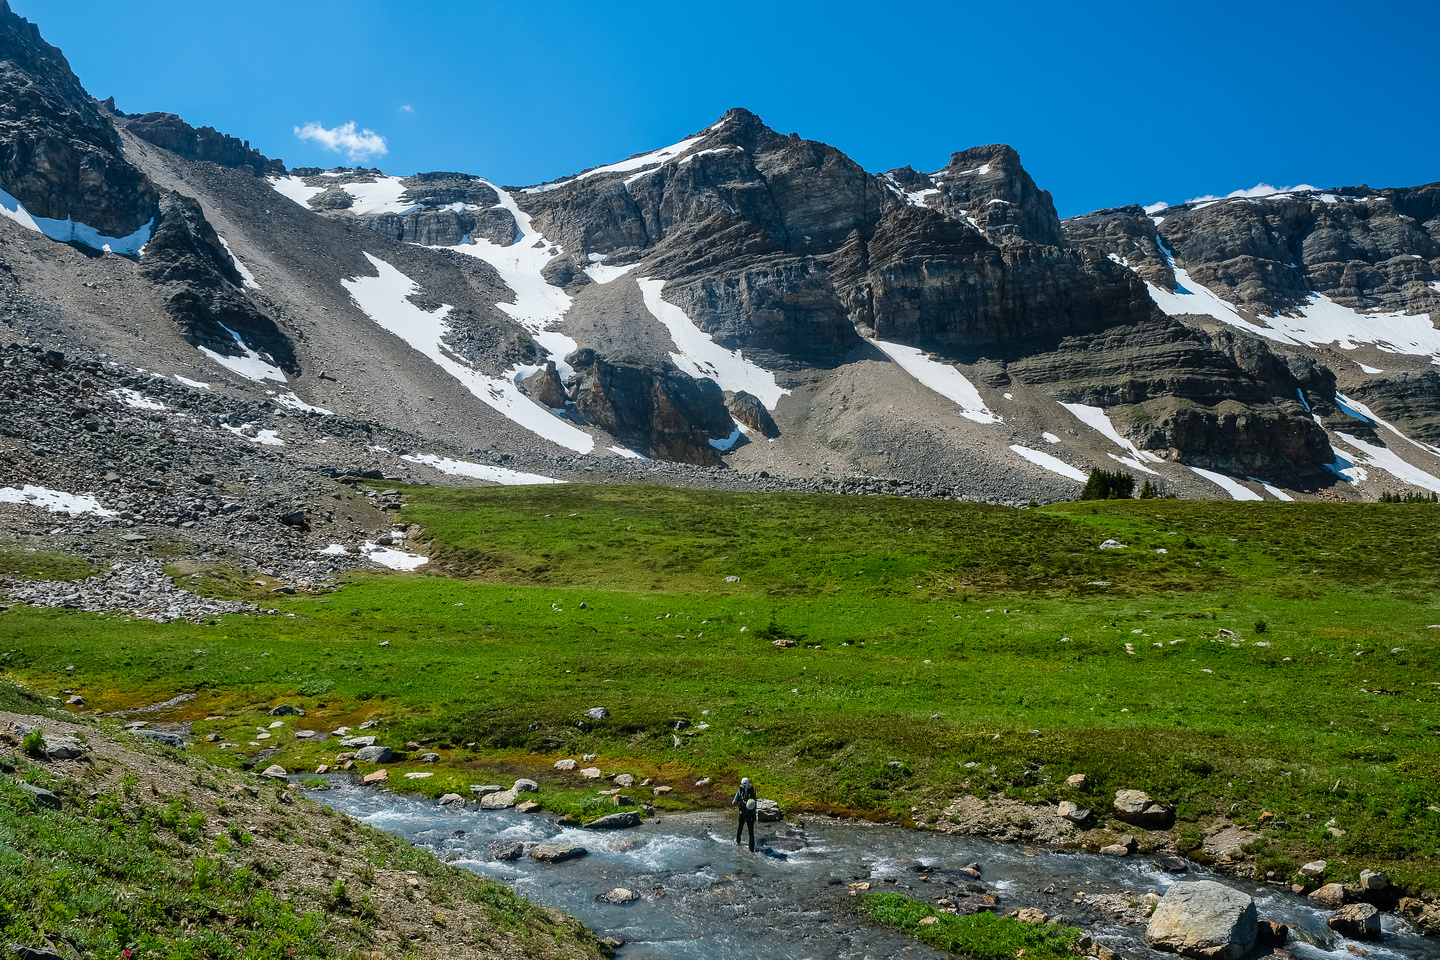 Crossing the Siffleur River valley back to the Quartzite Col.